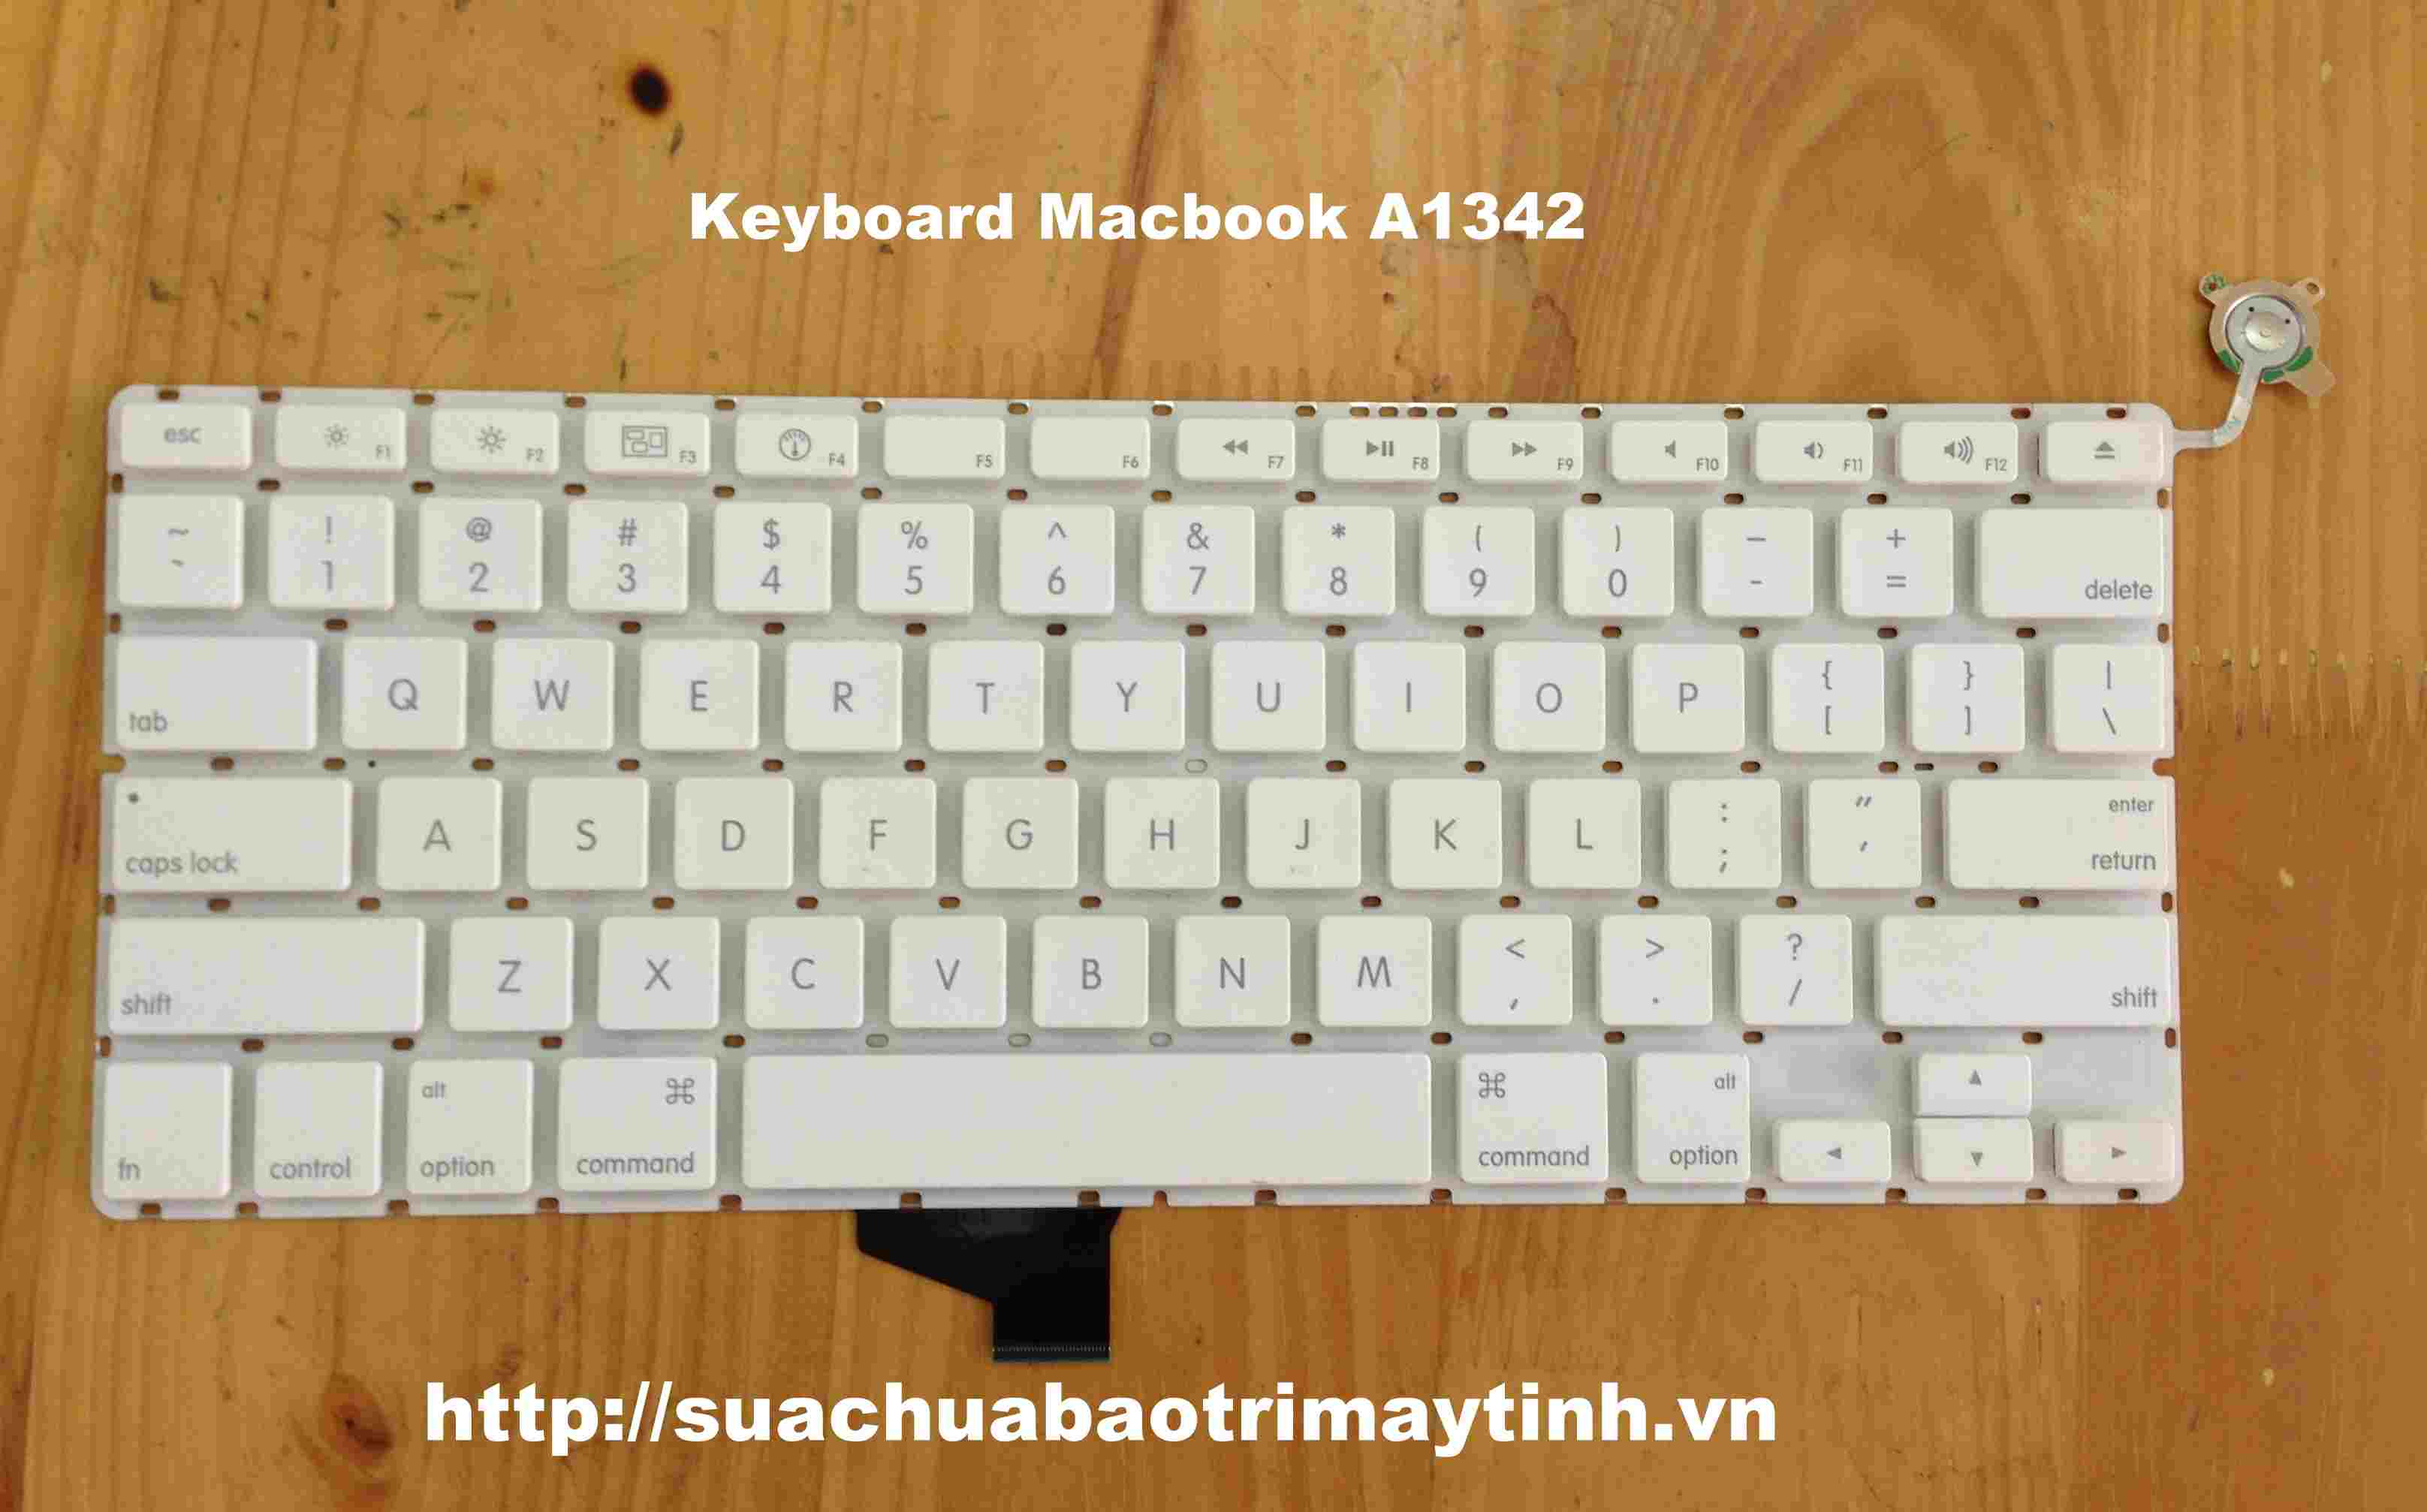 Keyboard Macbook A1342.JPG